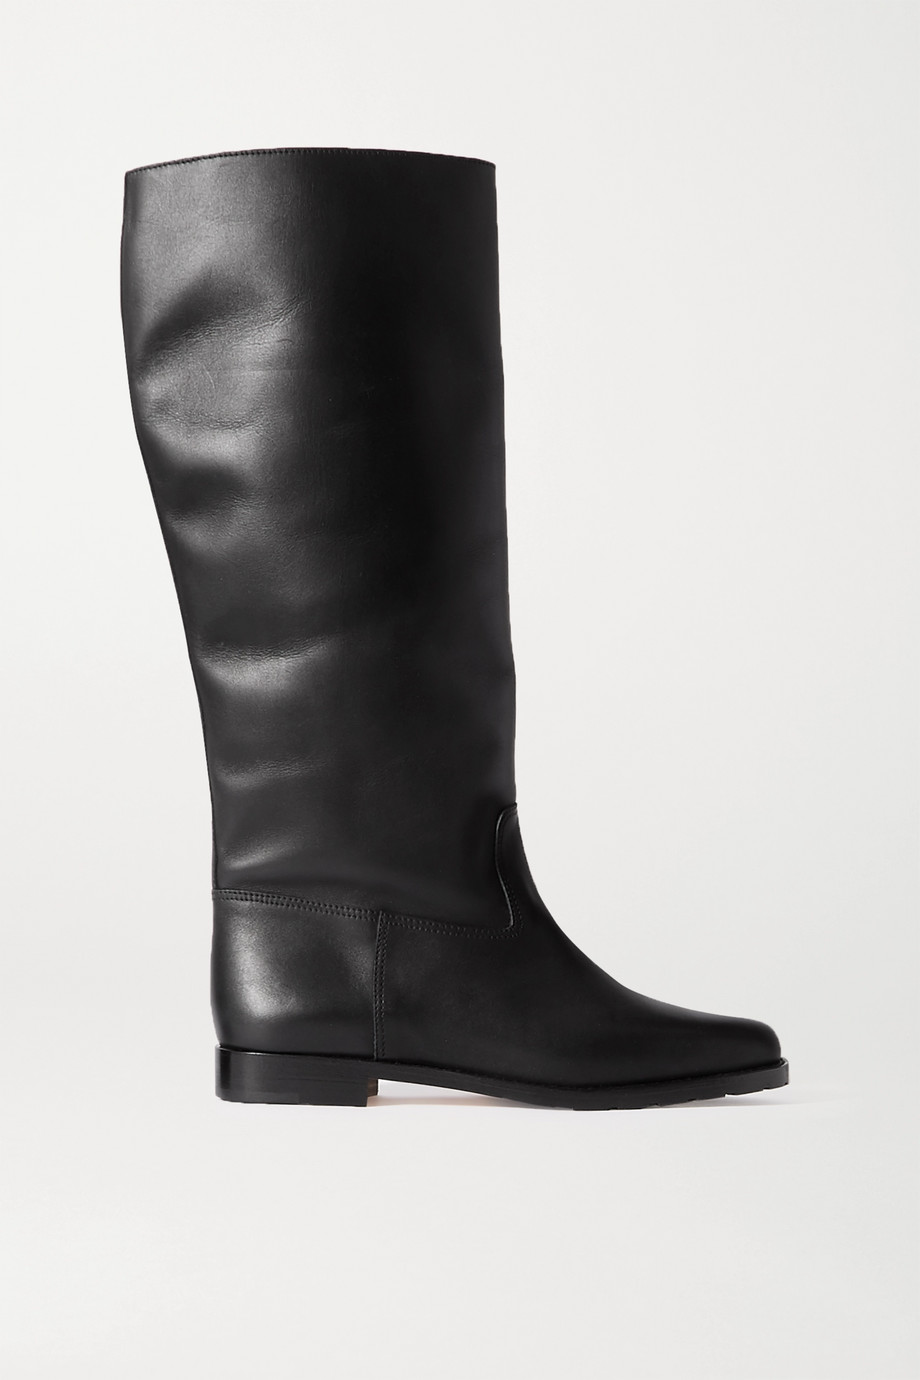 MANOLO BLAHNIK Luchino leather knee boots